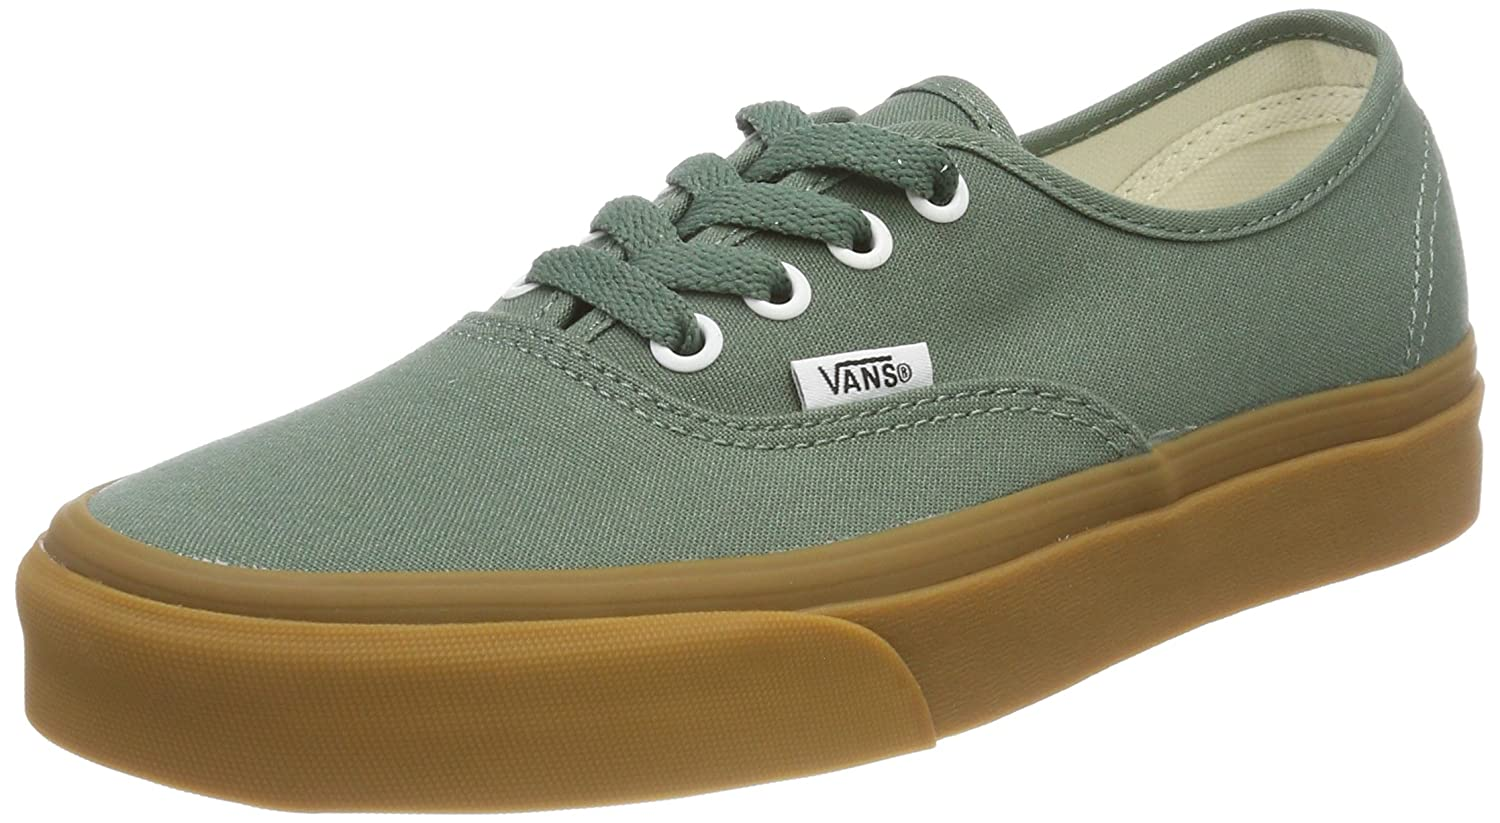 [バンズ] スニーカー Women's AUTHENTIC (Pig Suede) VN0A38EMU5O レディース B074H6CG2K Duck Green/Gum 12 M US Women / 10.5 M US Men 12 M US Women / 10.5 M US Men|Duck Green/Gum